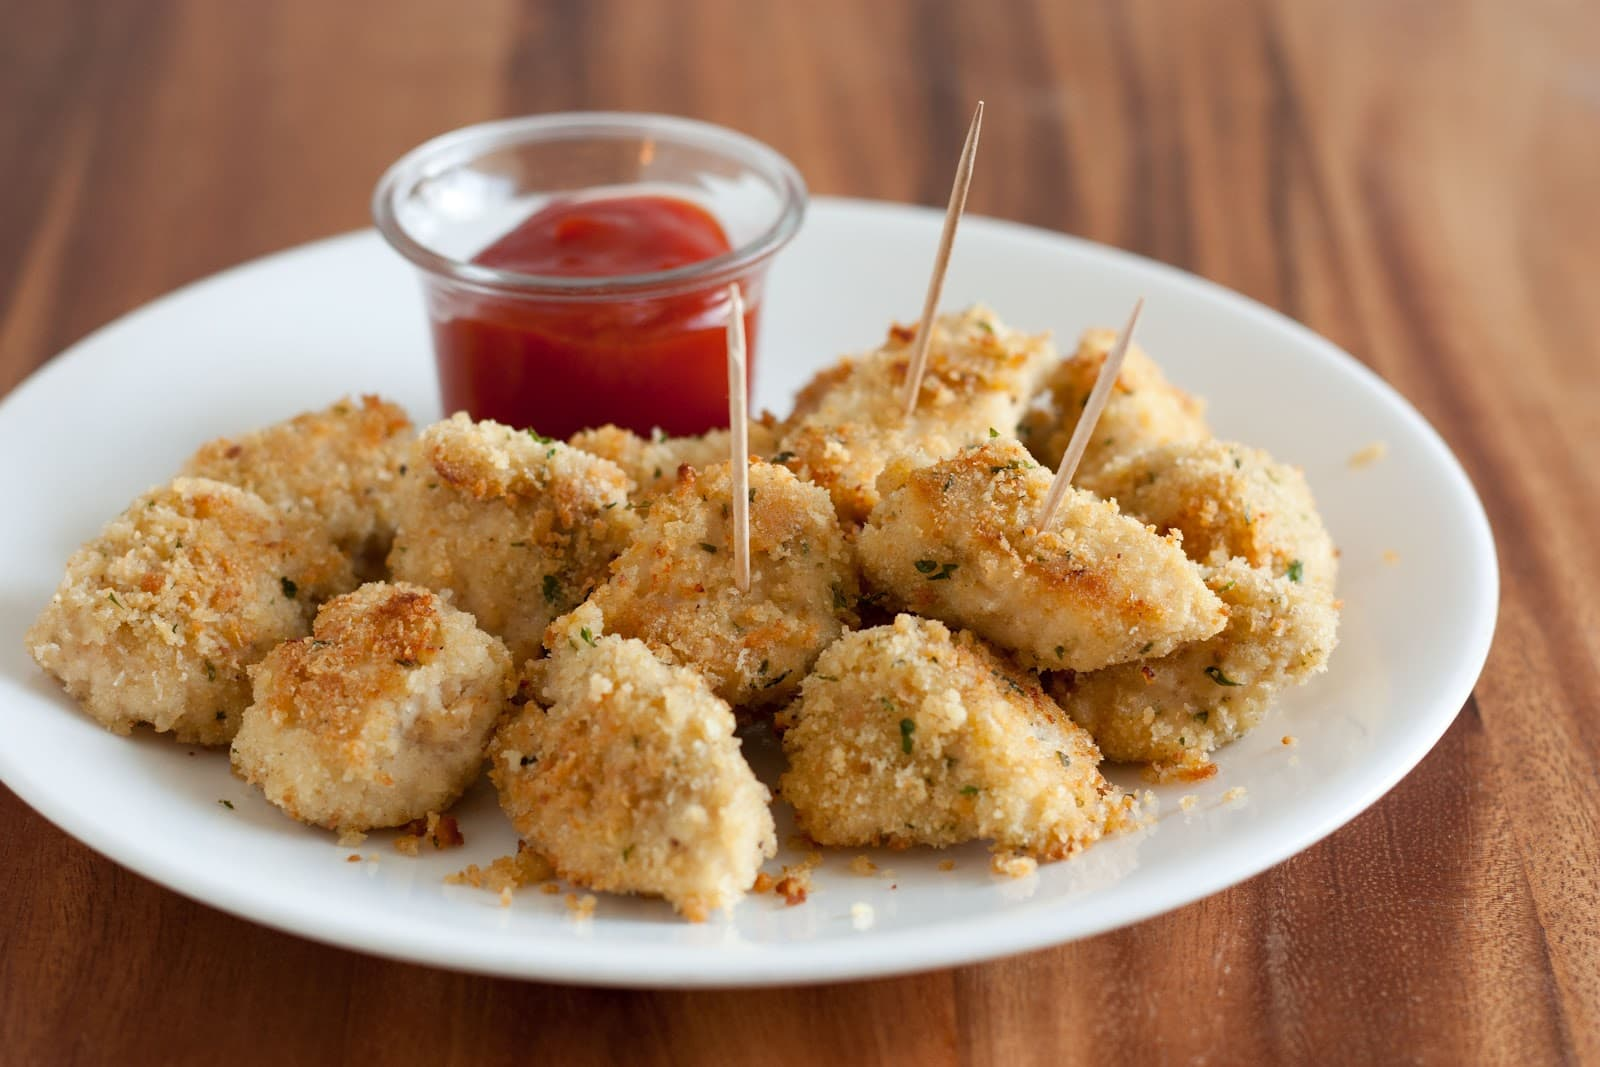 Baked Chicken Nuggets - Cooking Classy